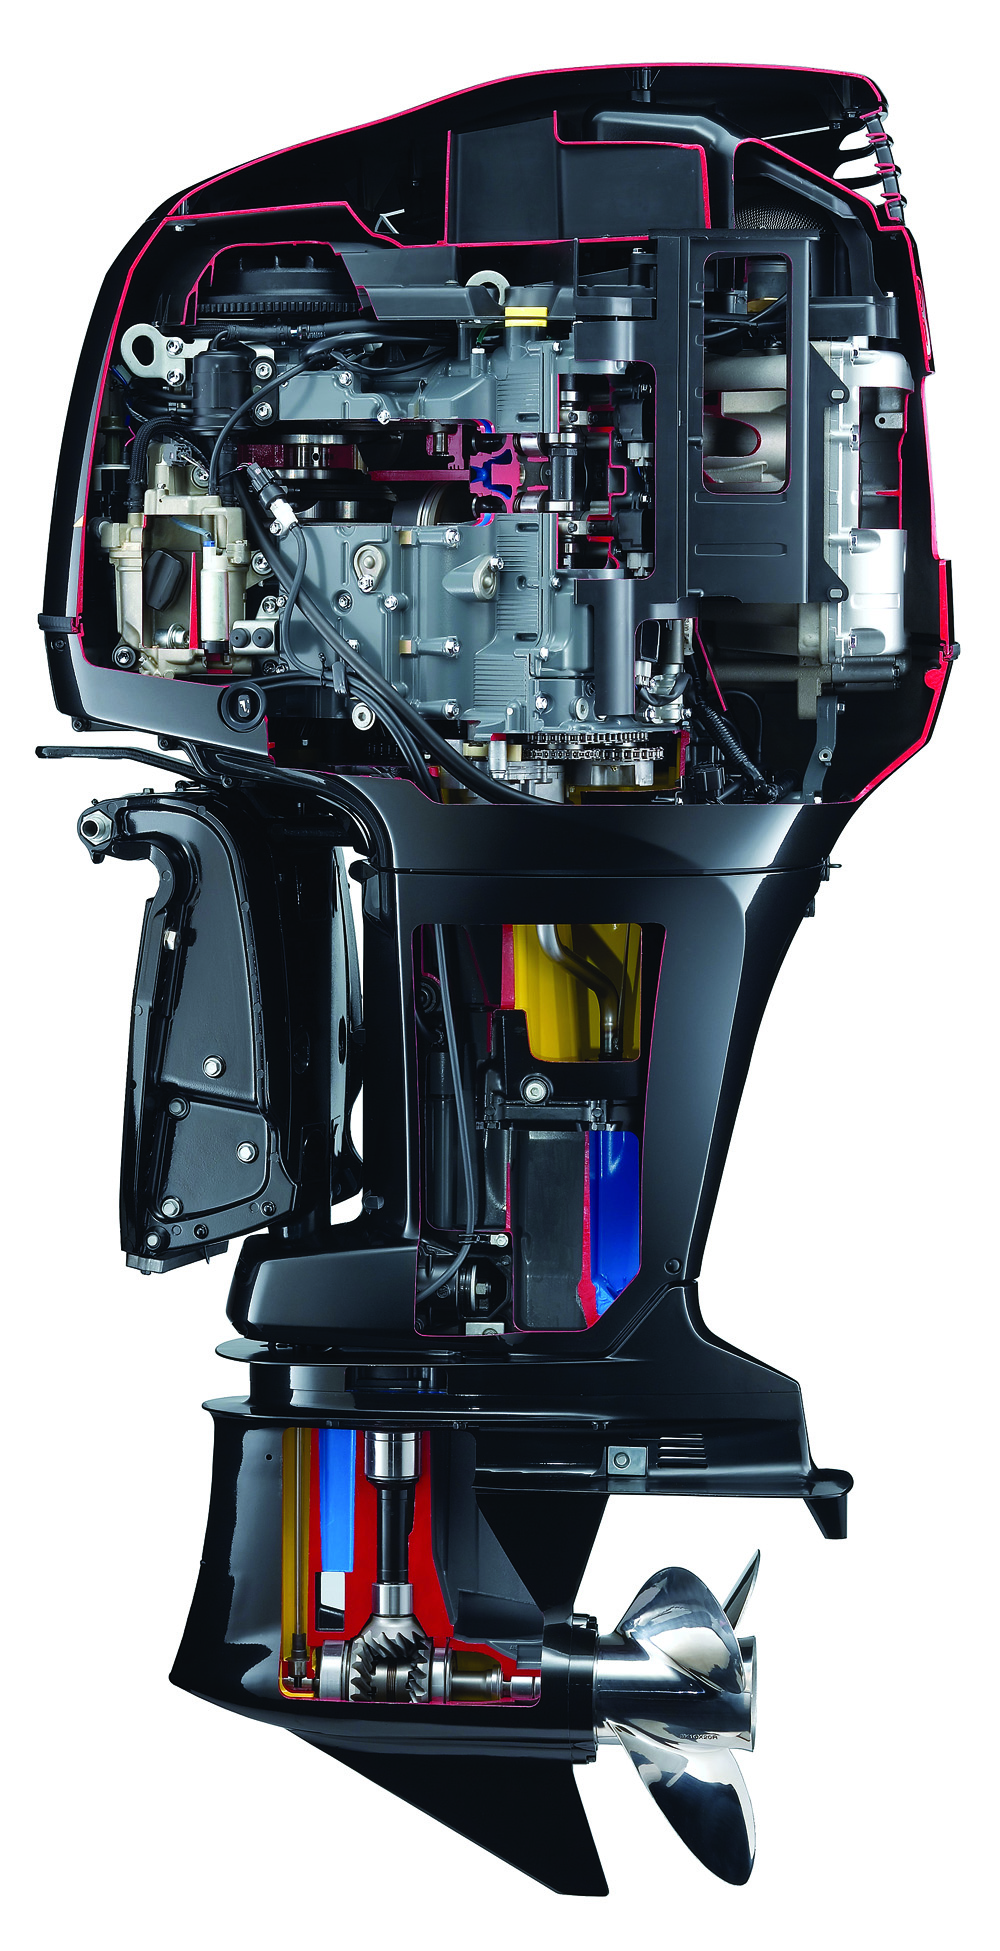 Outboard Basics: How to Maintain Your Boat's Outboard Engine